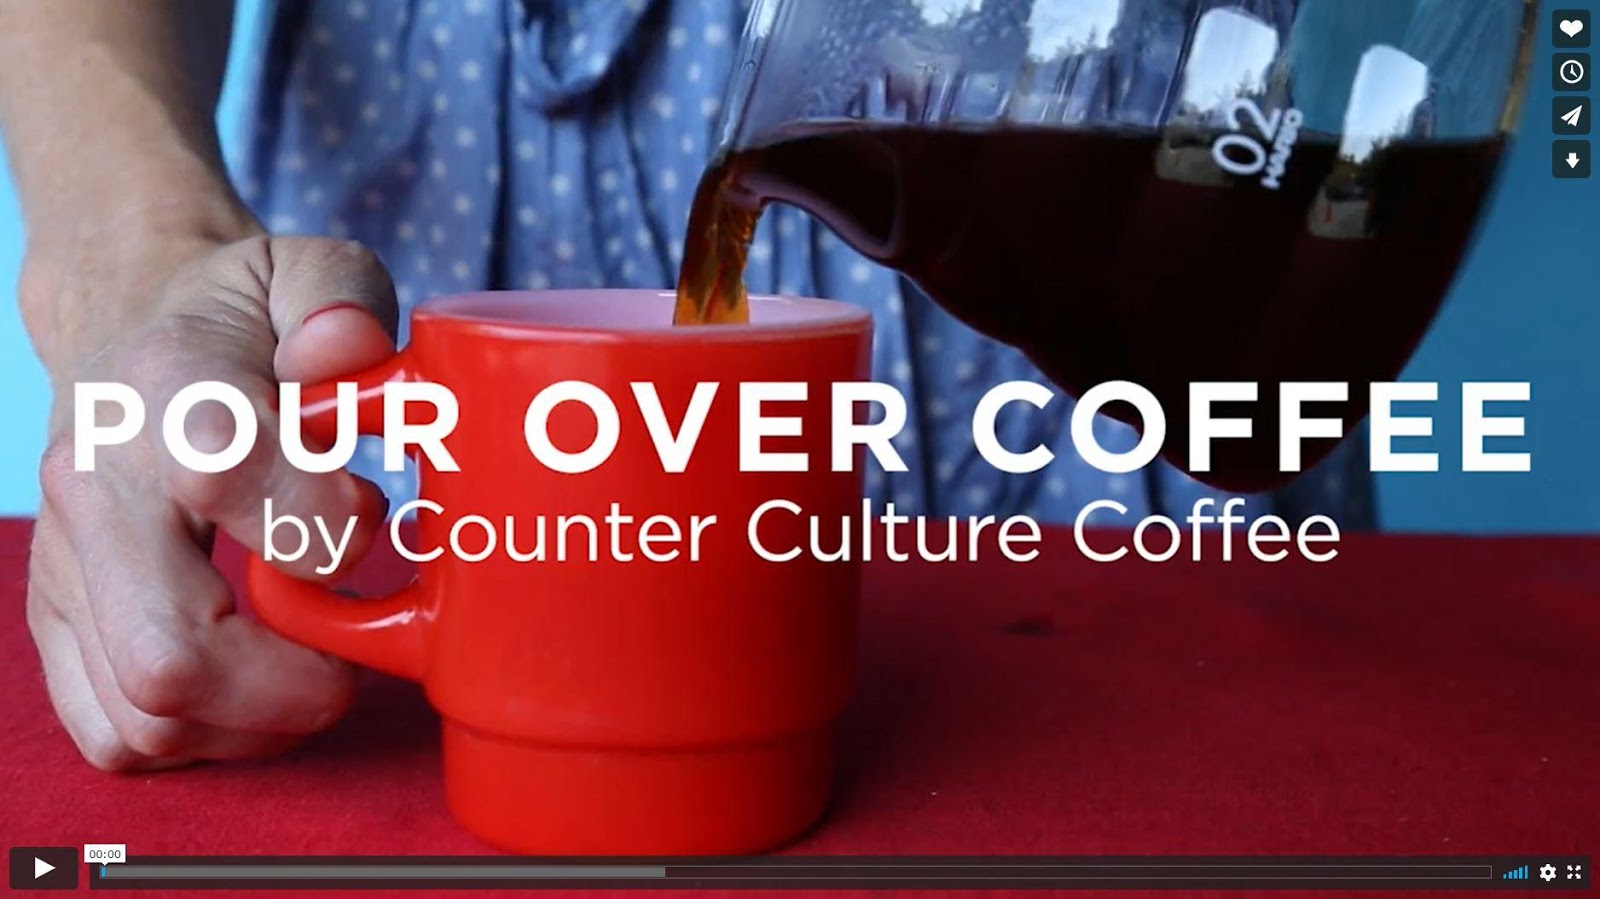 Counter Culture Coffee offers excellent free online guides